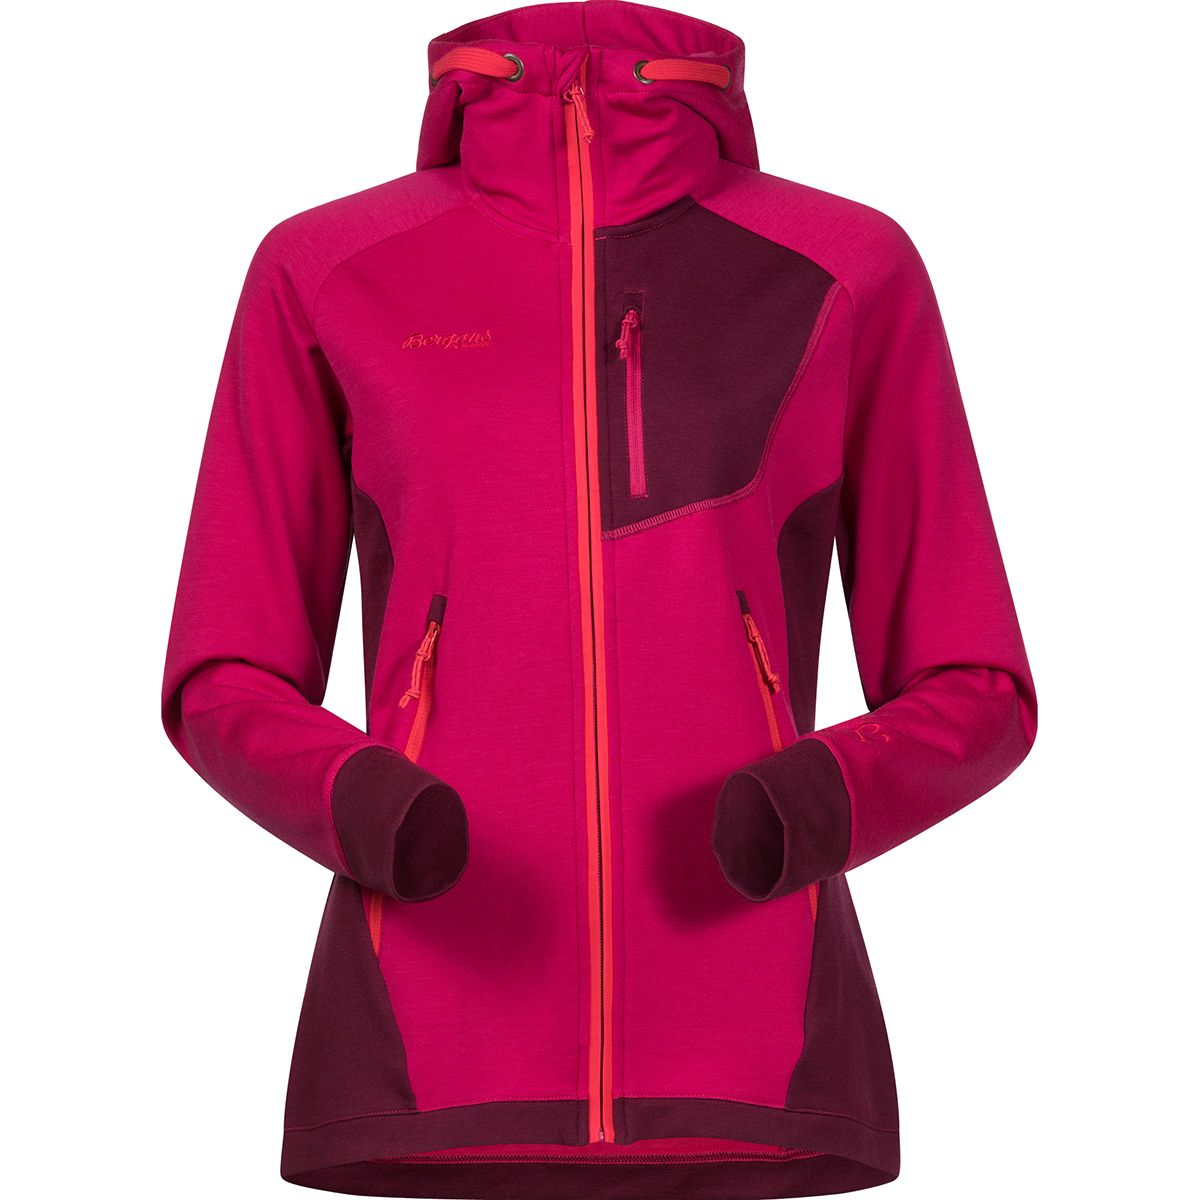 Bergans Damen Cecilie Wool Hooded Jacke (Größe XS, Rot) | Isolationsjacken > Damen